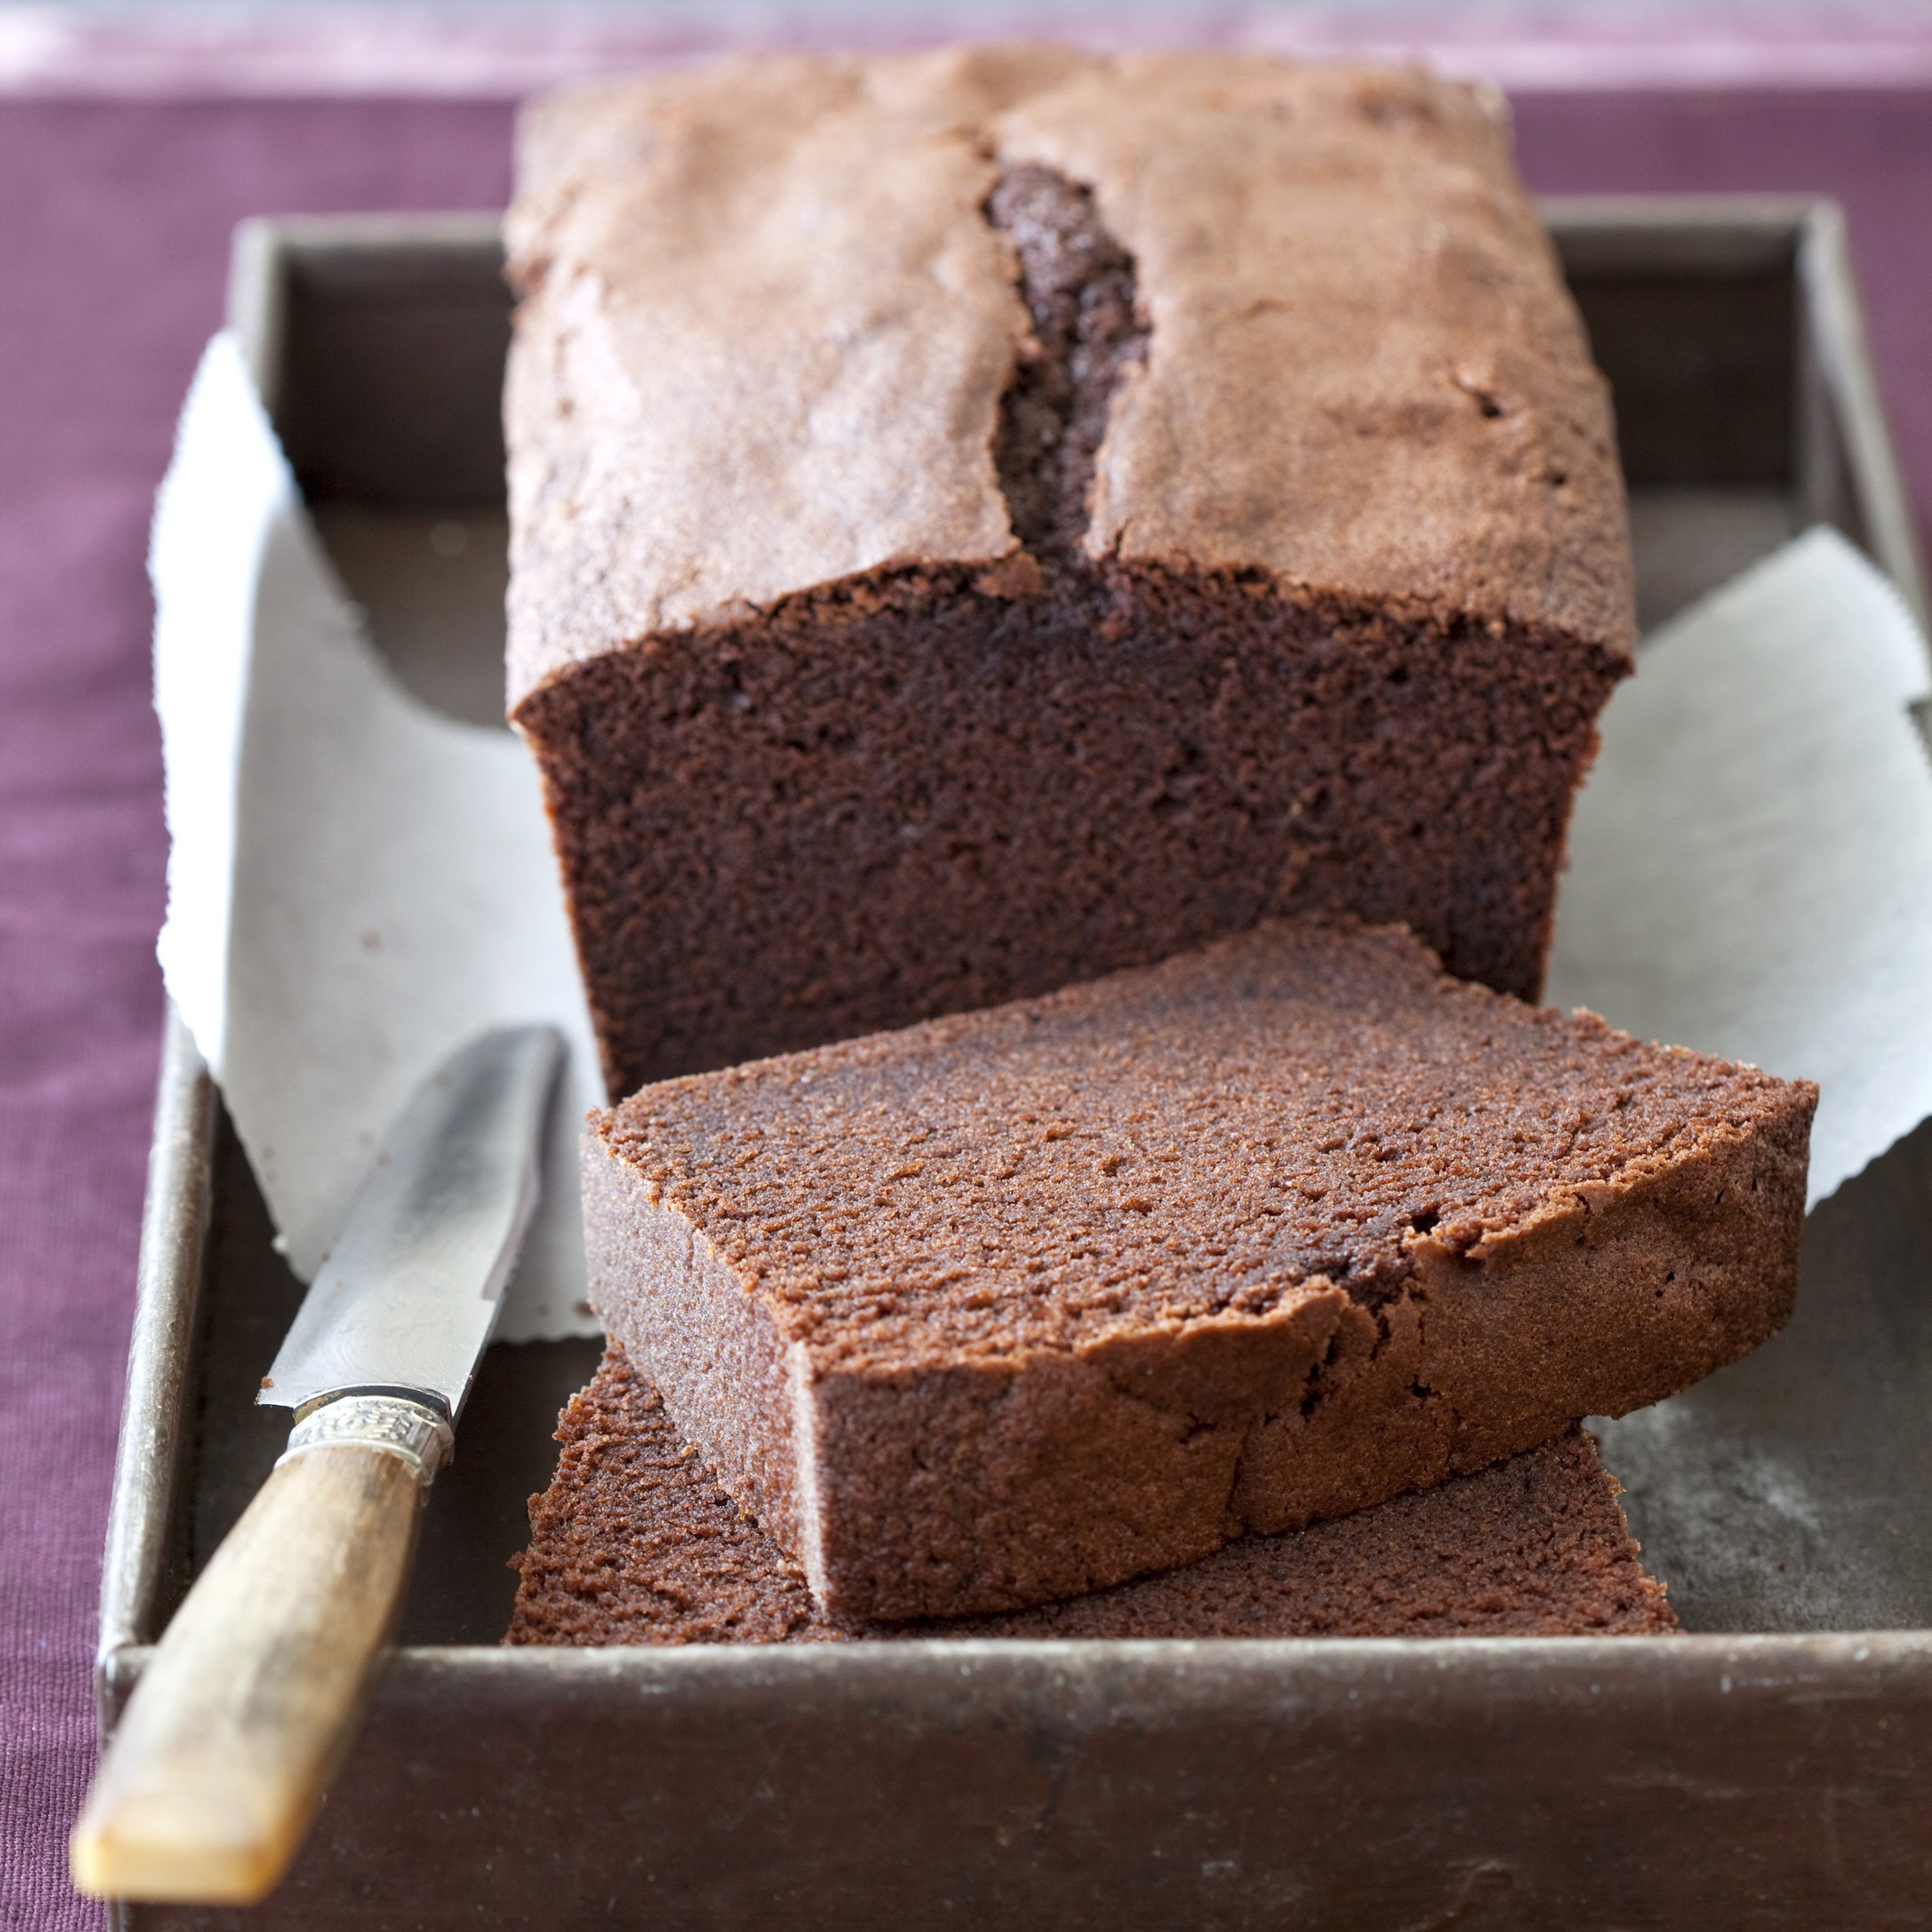 Global Küchen Test Retool The Classic Pound Cake To Make It Ultra Chocolatey